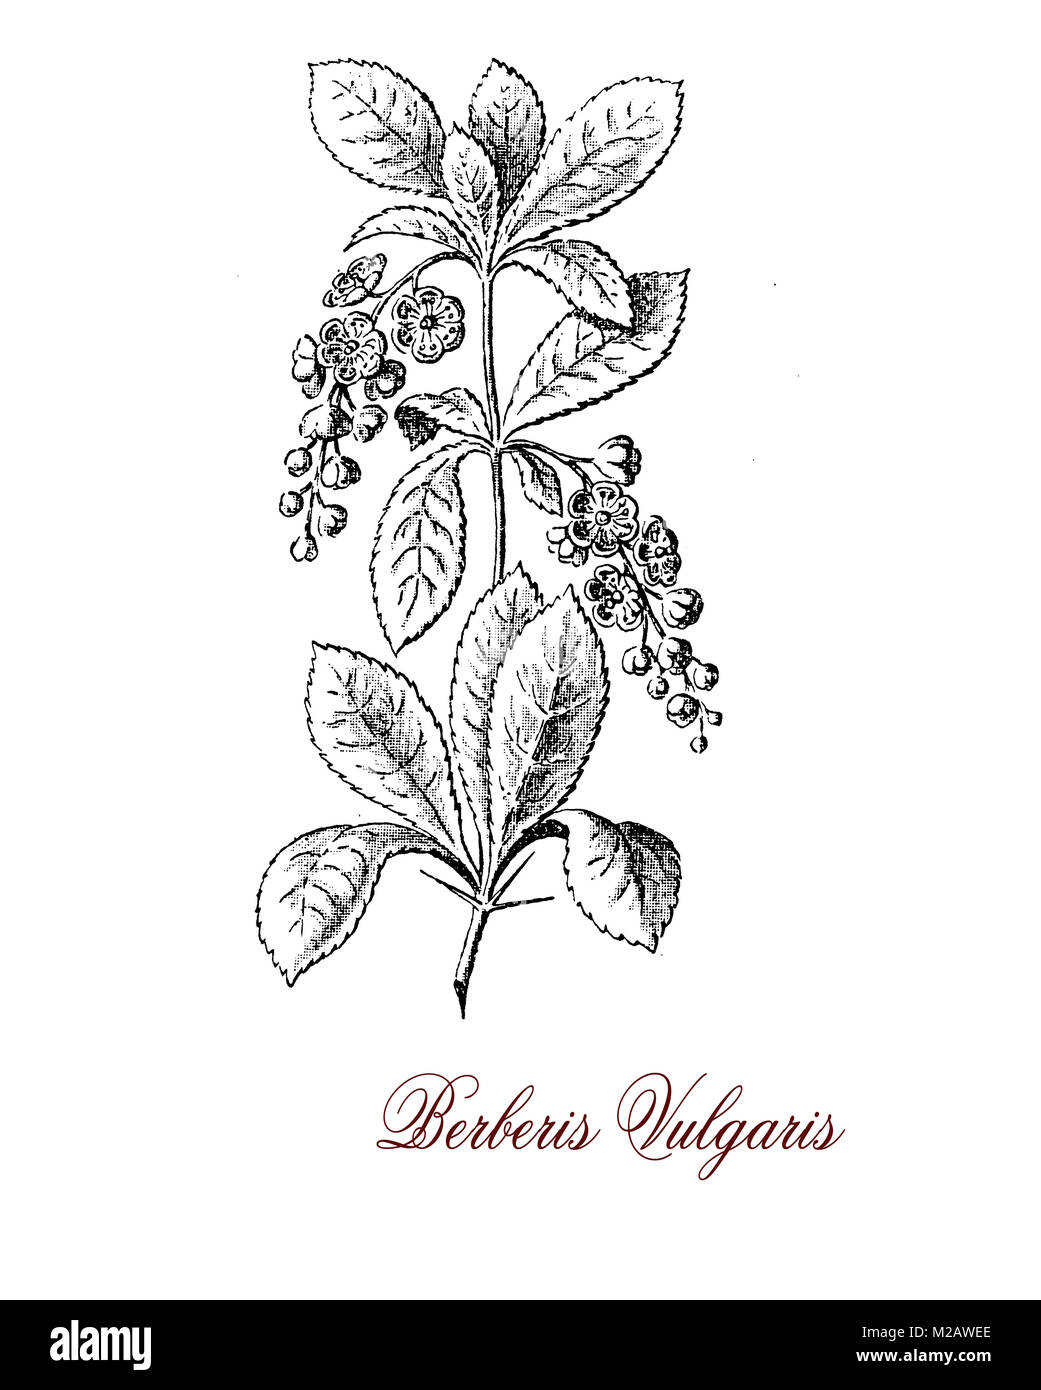 Vintage engraving of Berberis vulgaris or common barberry, shrub cultivated as fruit for the red berries rich in - Stock Image